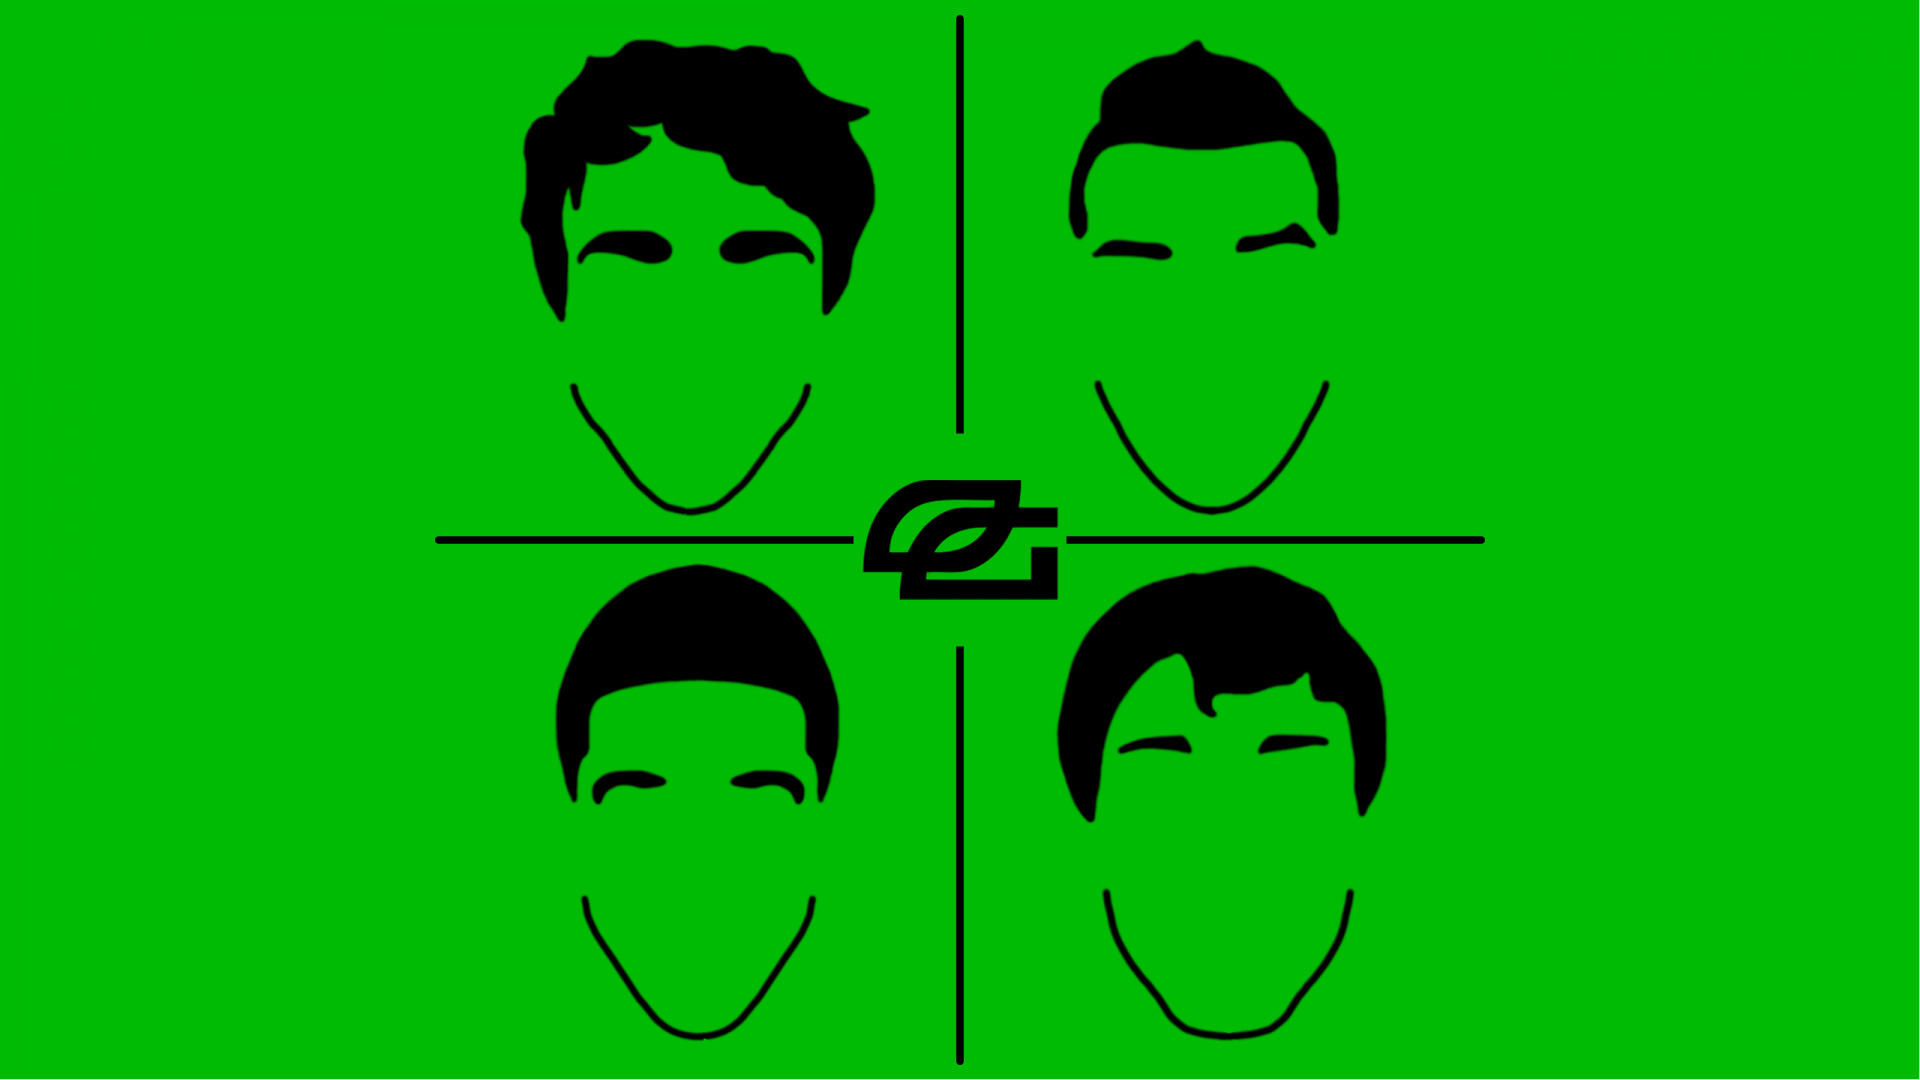 1920x1080 Optic gaming roster picture wallpaper.